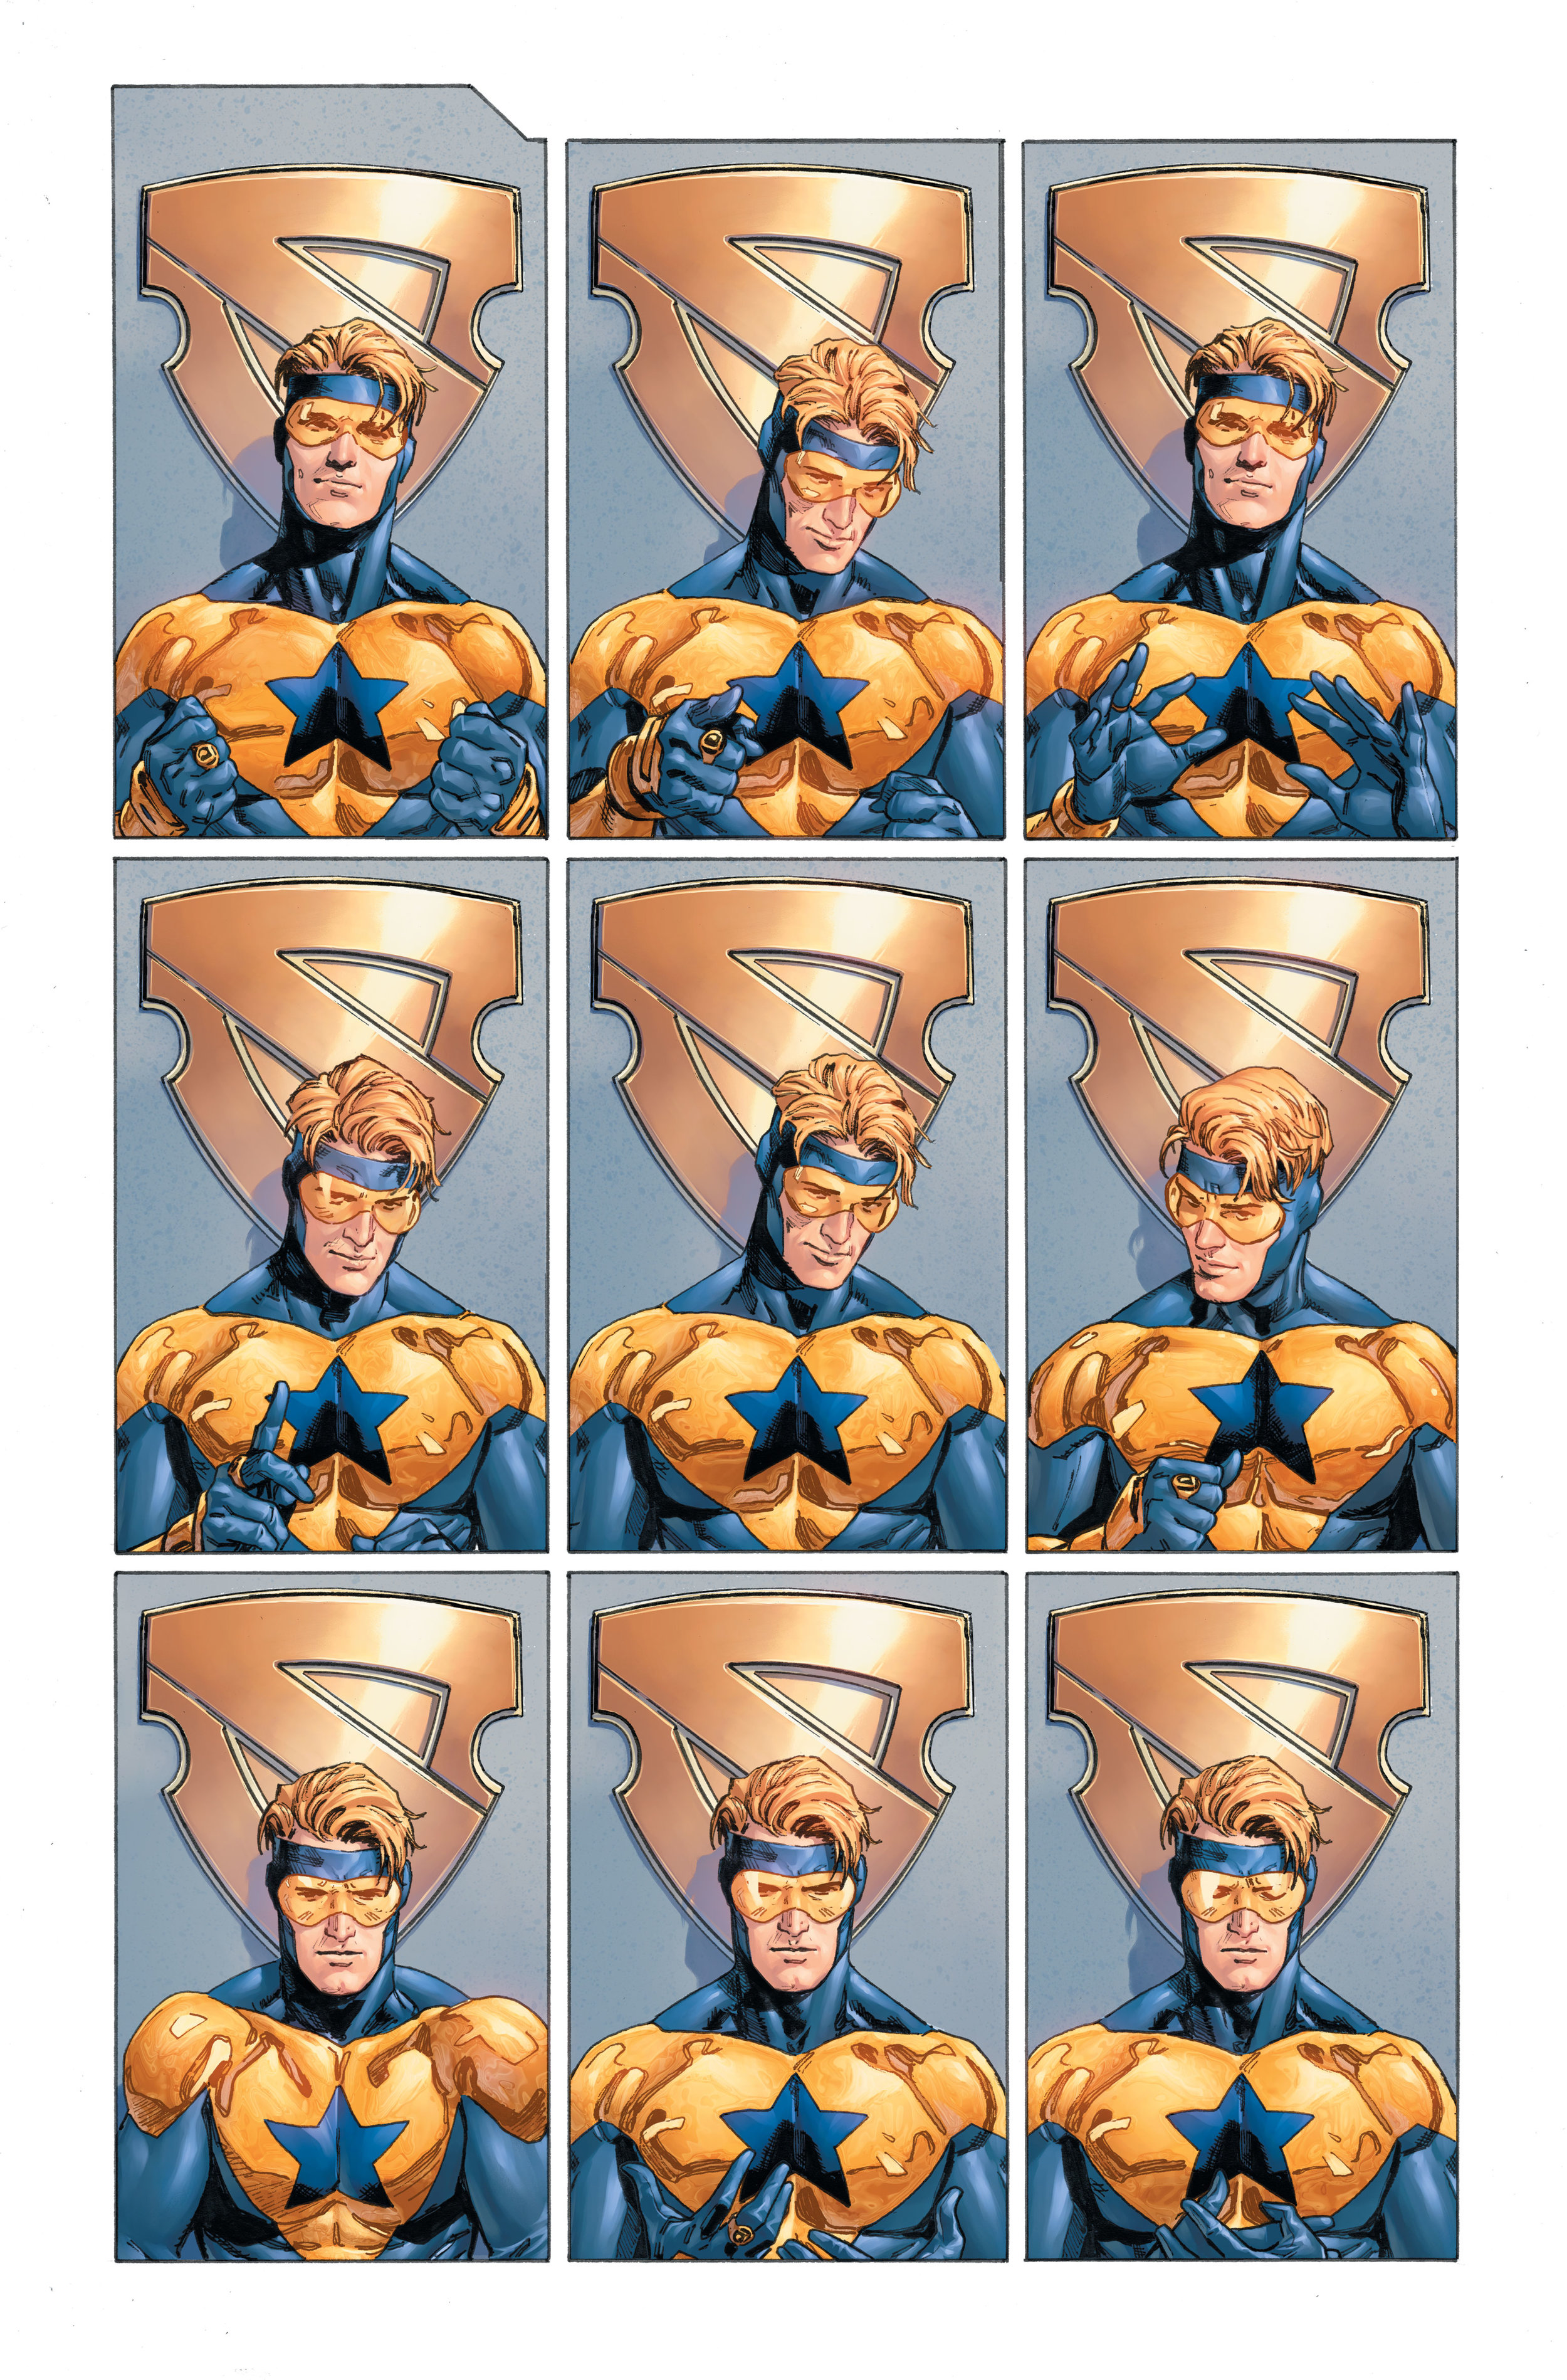 HIC_001_Booster_Gold_confessional.jpg